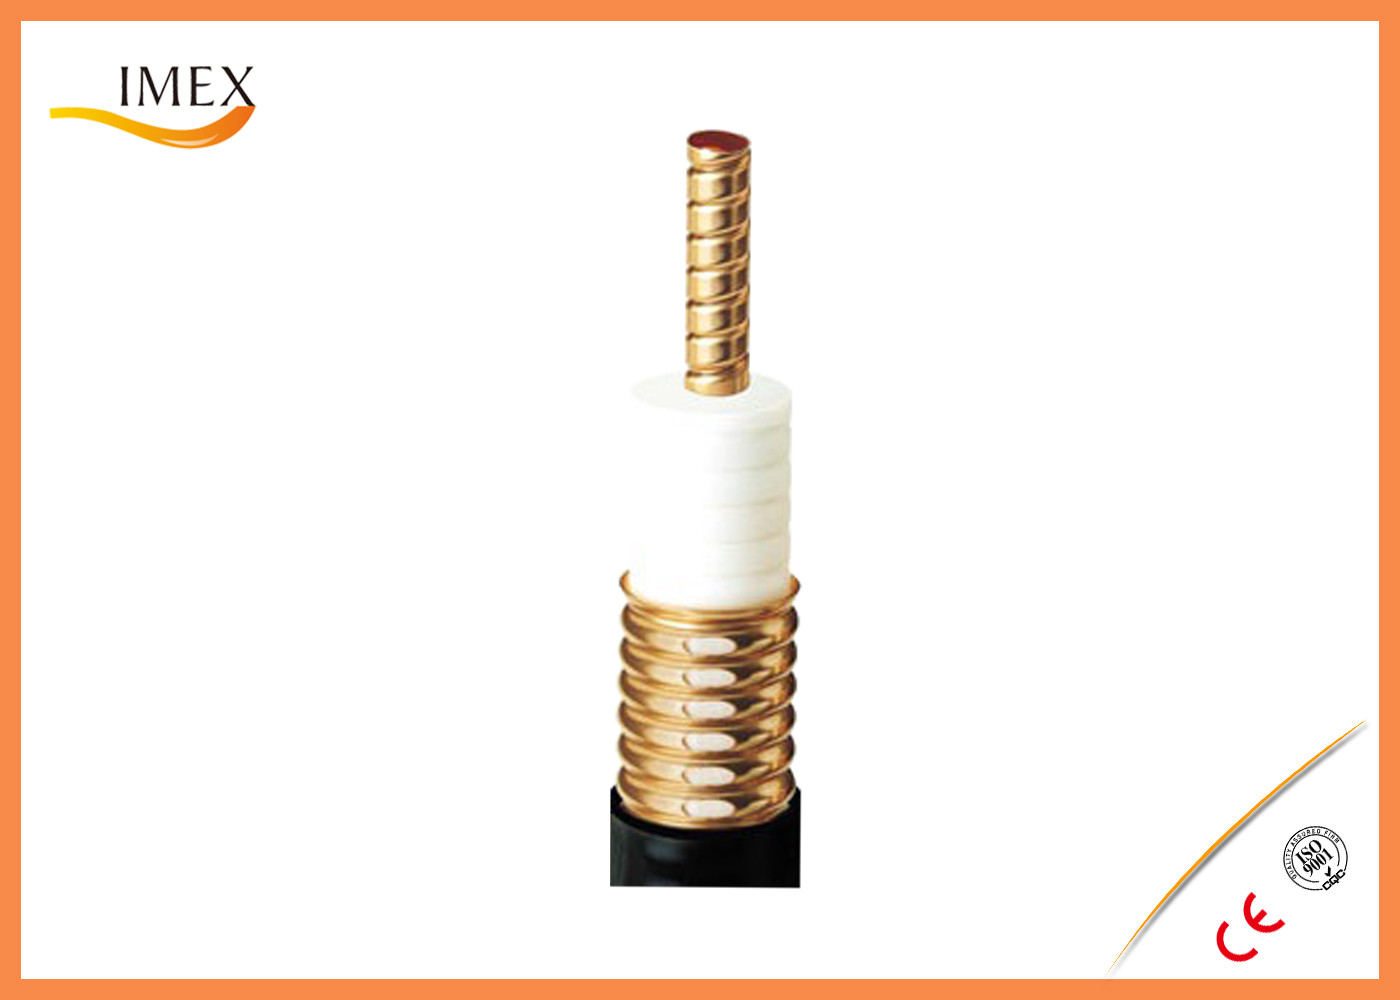 "Coupling mode 1-5/8"" Leaky Corrugated 50ohm Coaxial Cable, 1/2"" RF Leaky Feeder Cable with low loss"